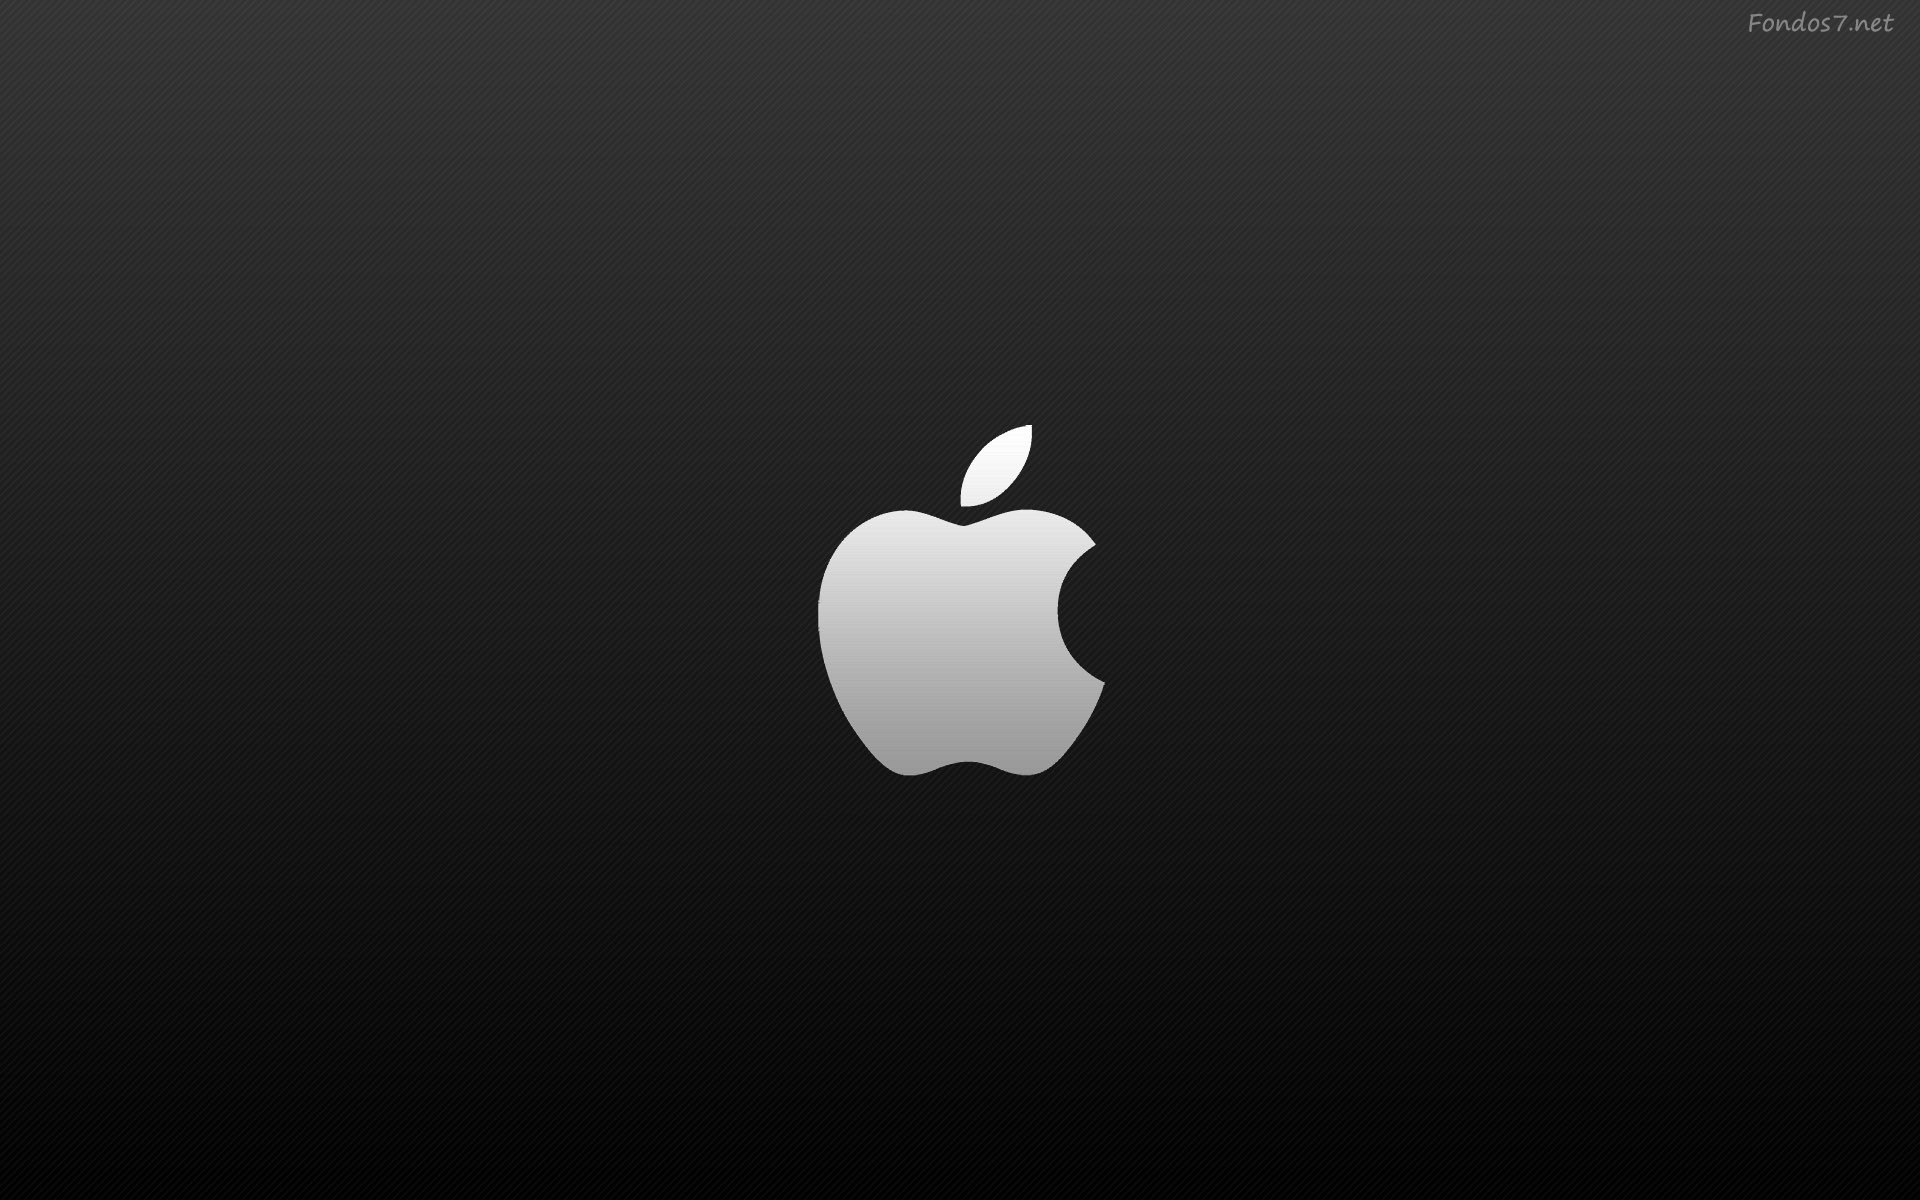 Descargar Fondos de pantalla logo de apple mac hd widescreen Gratis 1920x1200